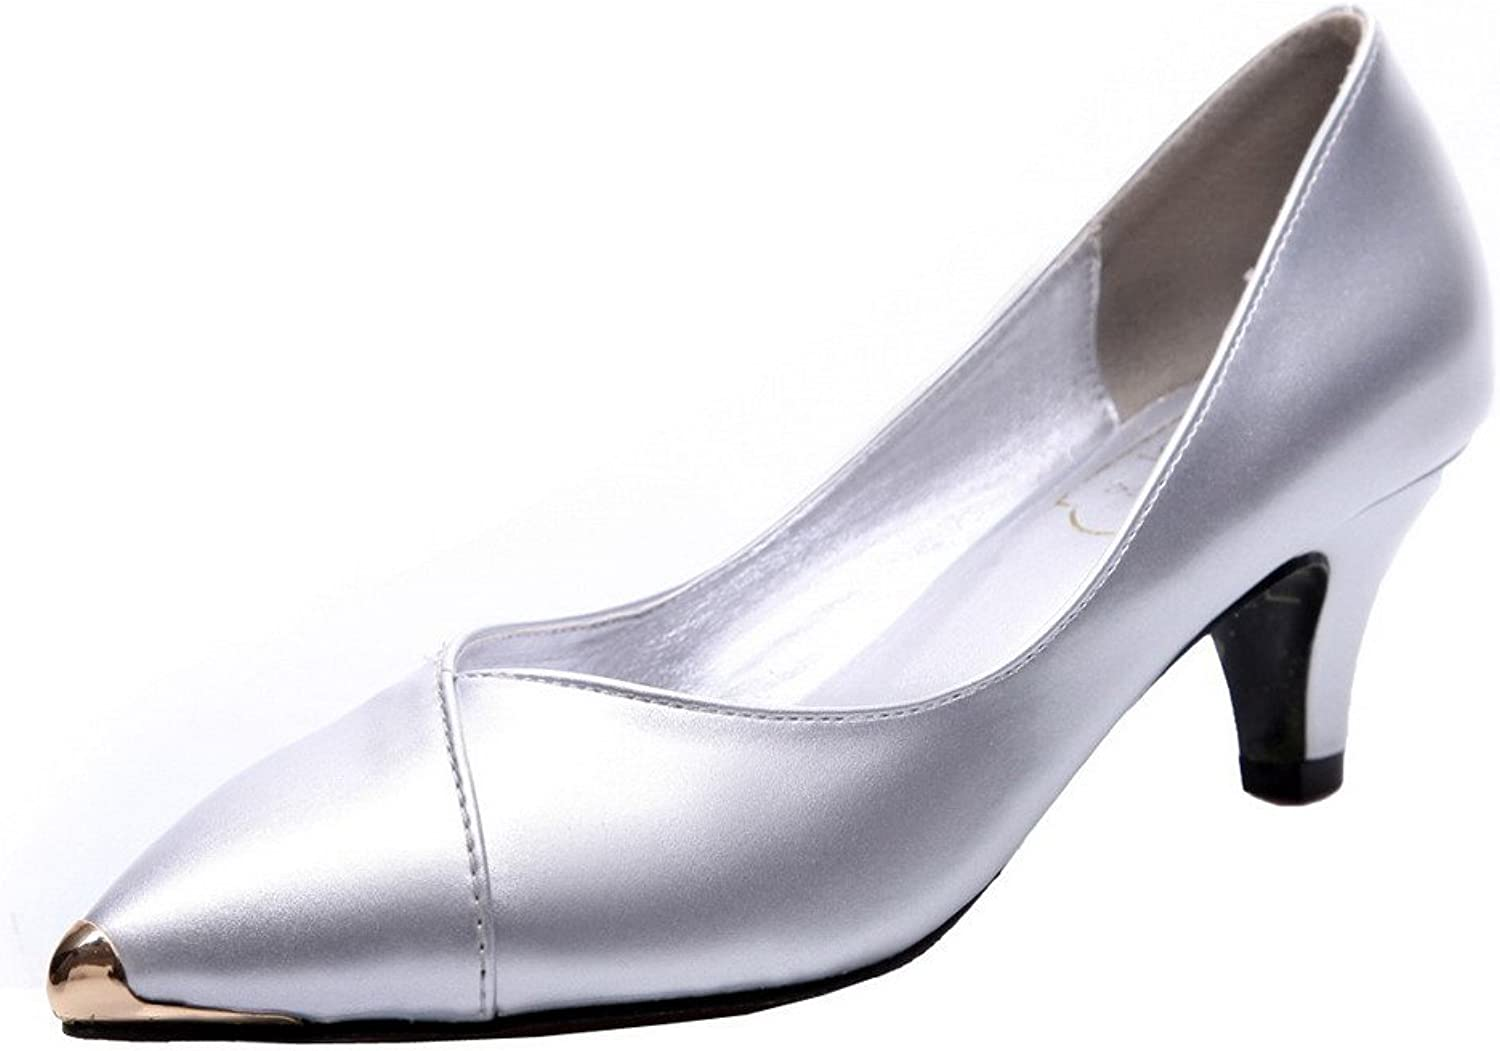 WeiPoot Women's Patent Leather Kitten-Heels Solid Pull-On Pumps-shoes